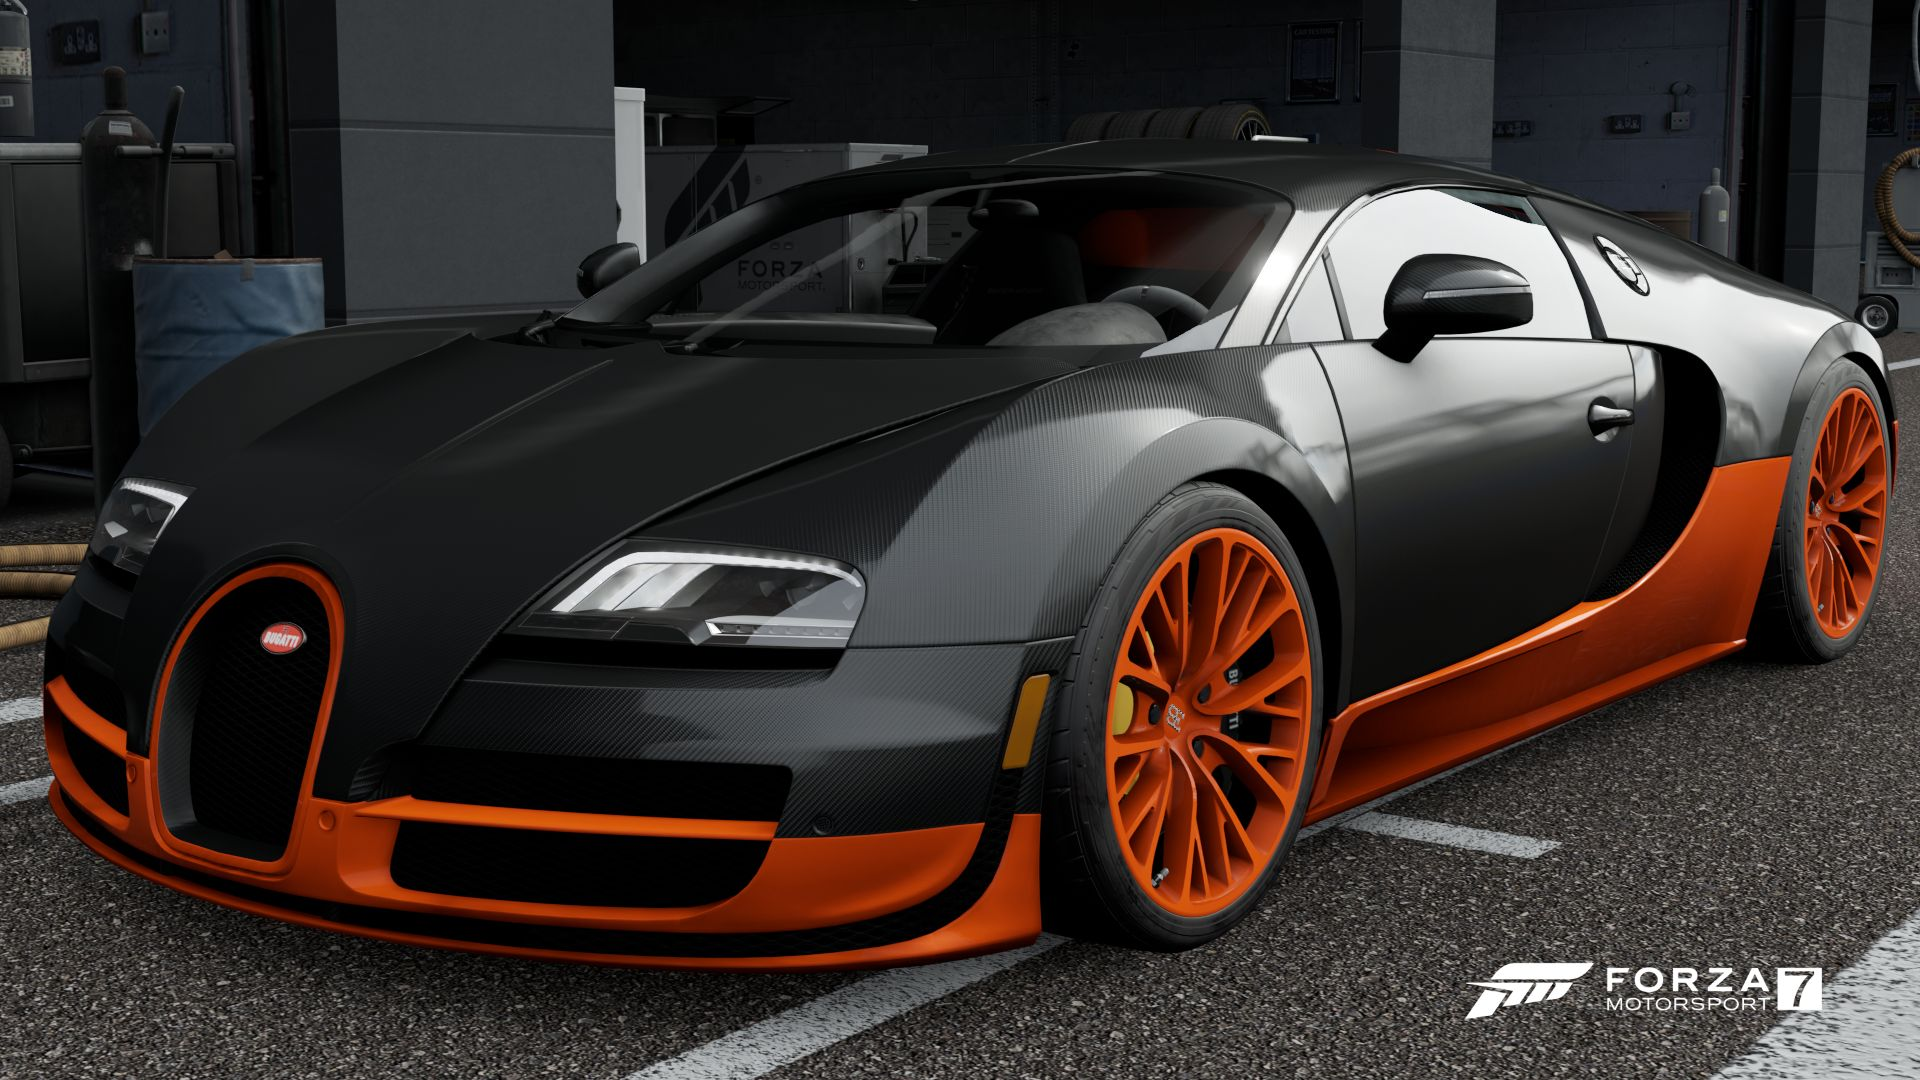 bugatti veyron super sport forza motorsport wiki fandom powered by wikia. Black Bedroom Furniture Sets. Home Design Ideas